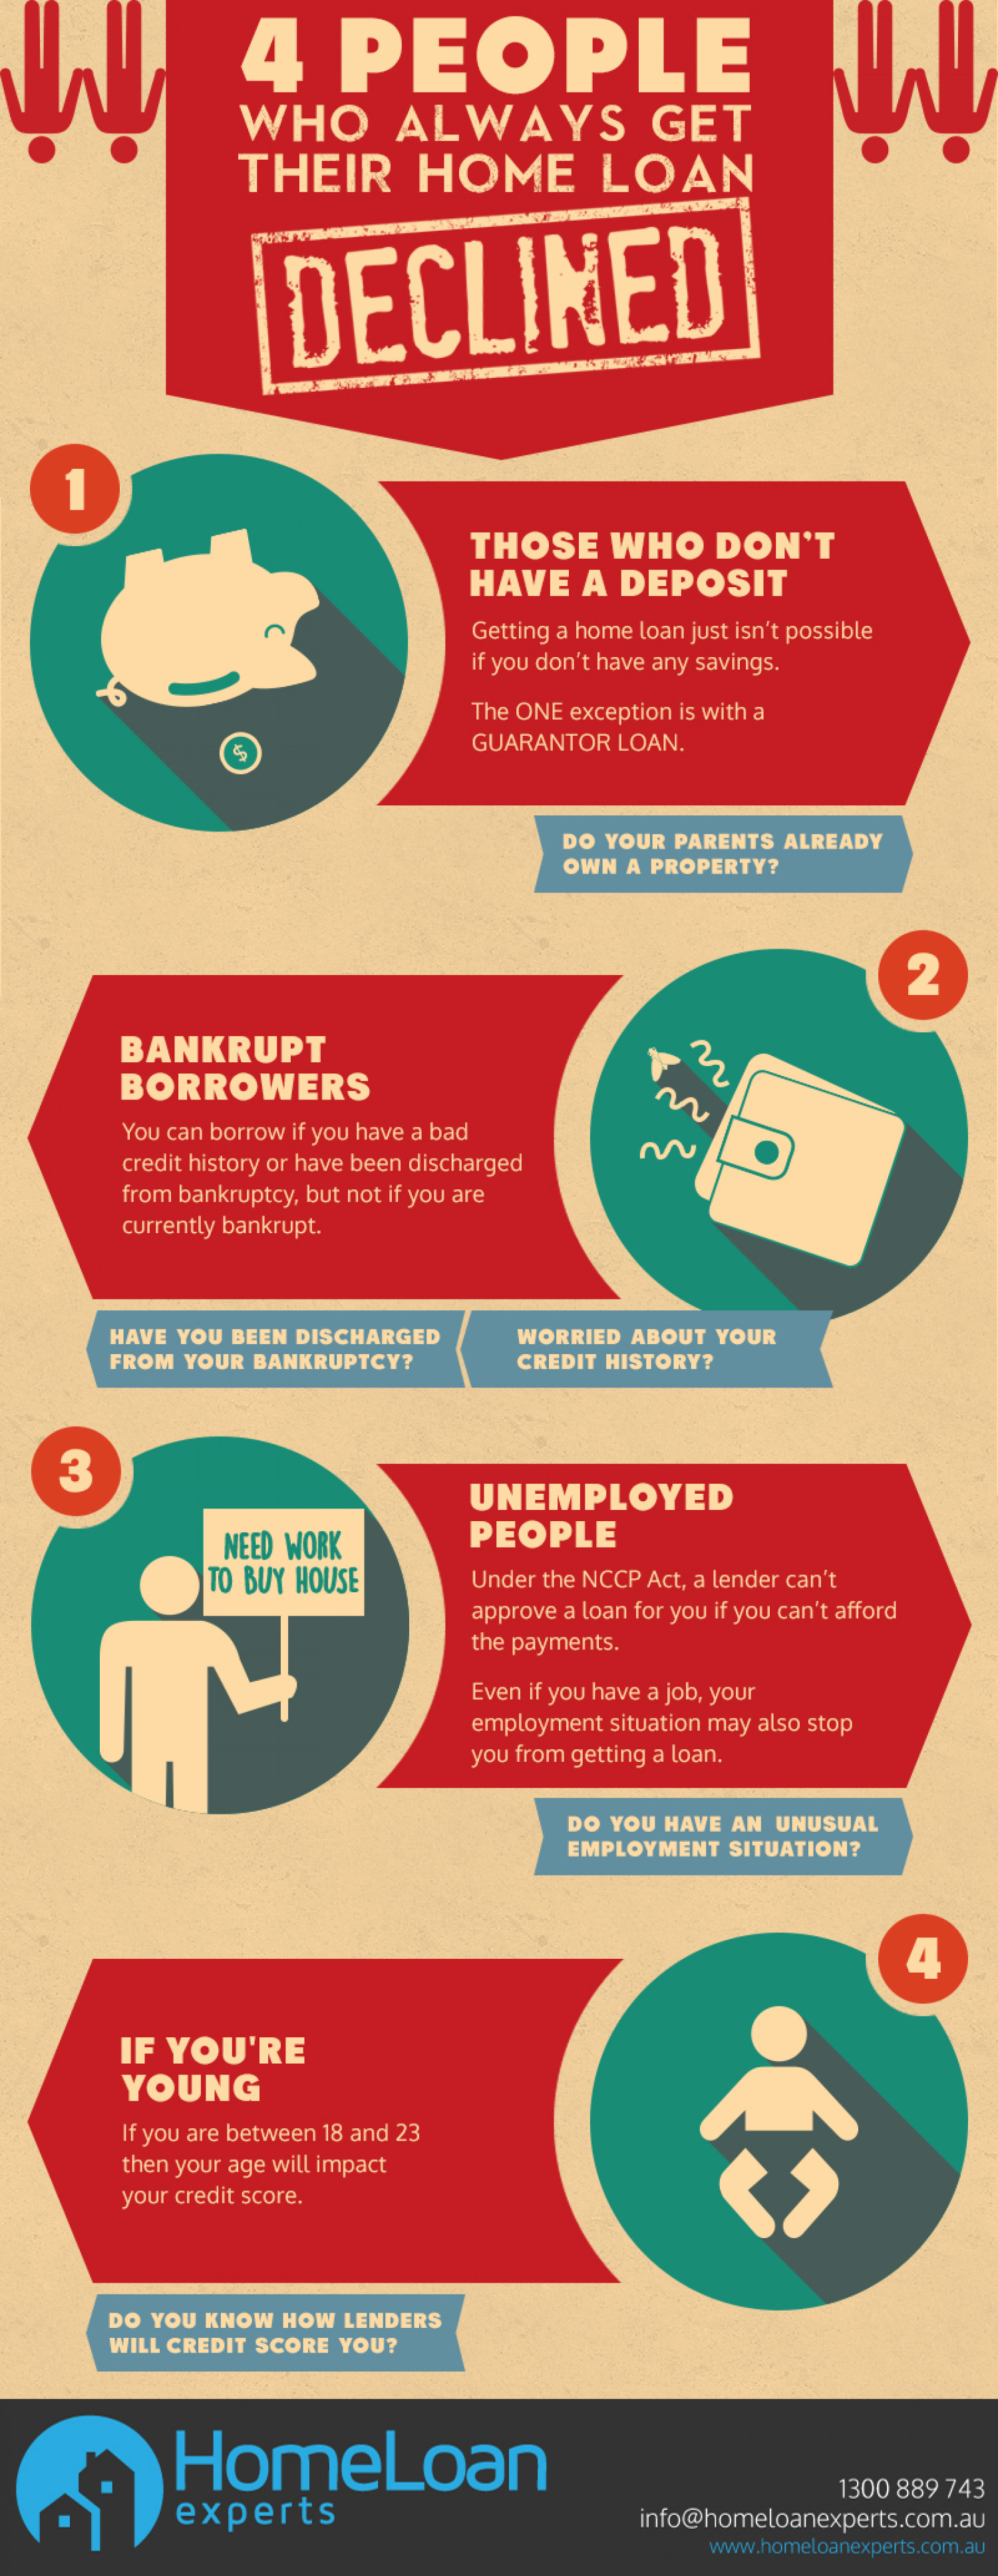 4 people who always get their home loan declined. Infographic